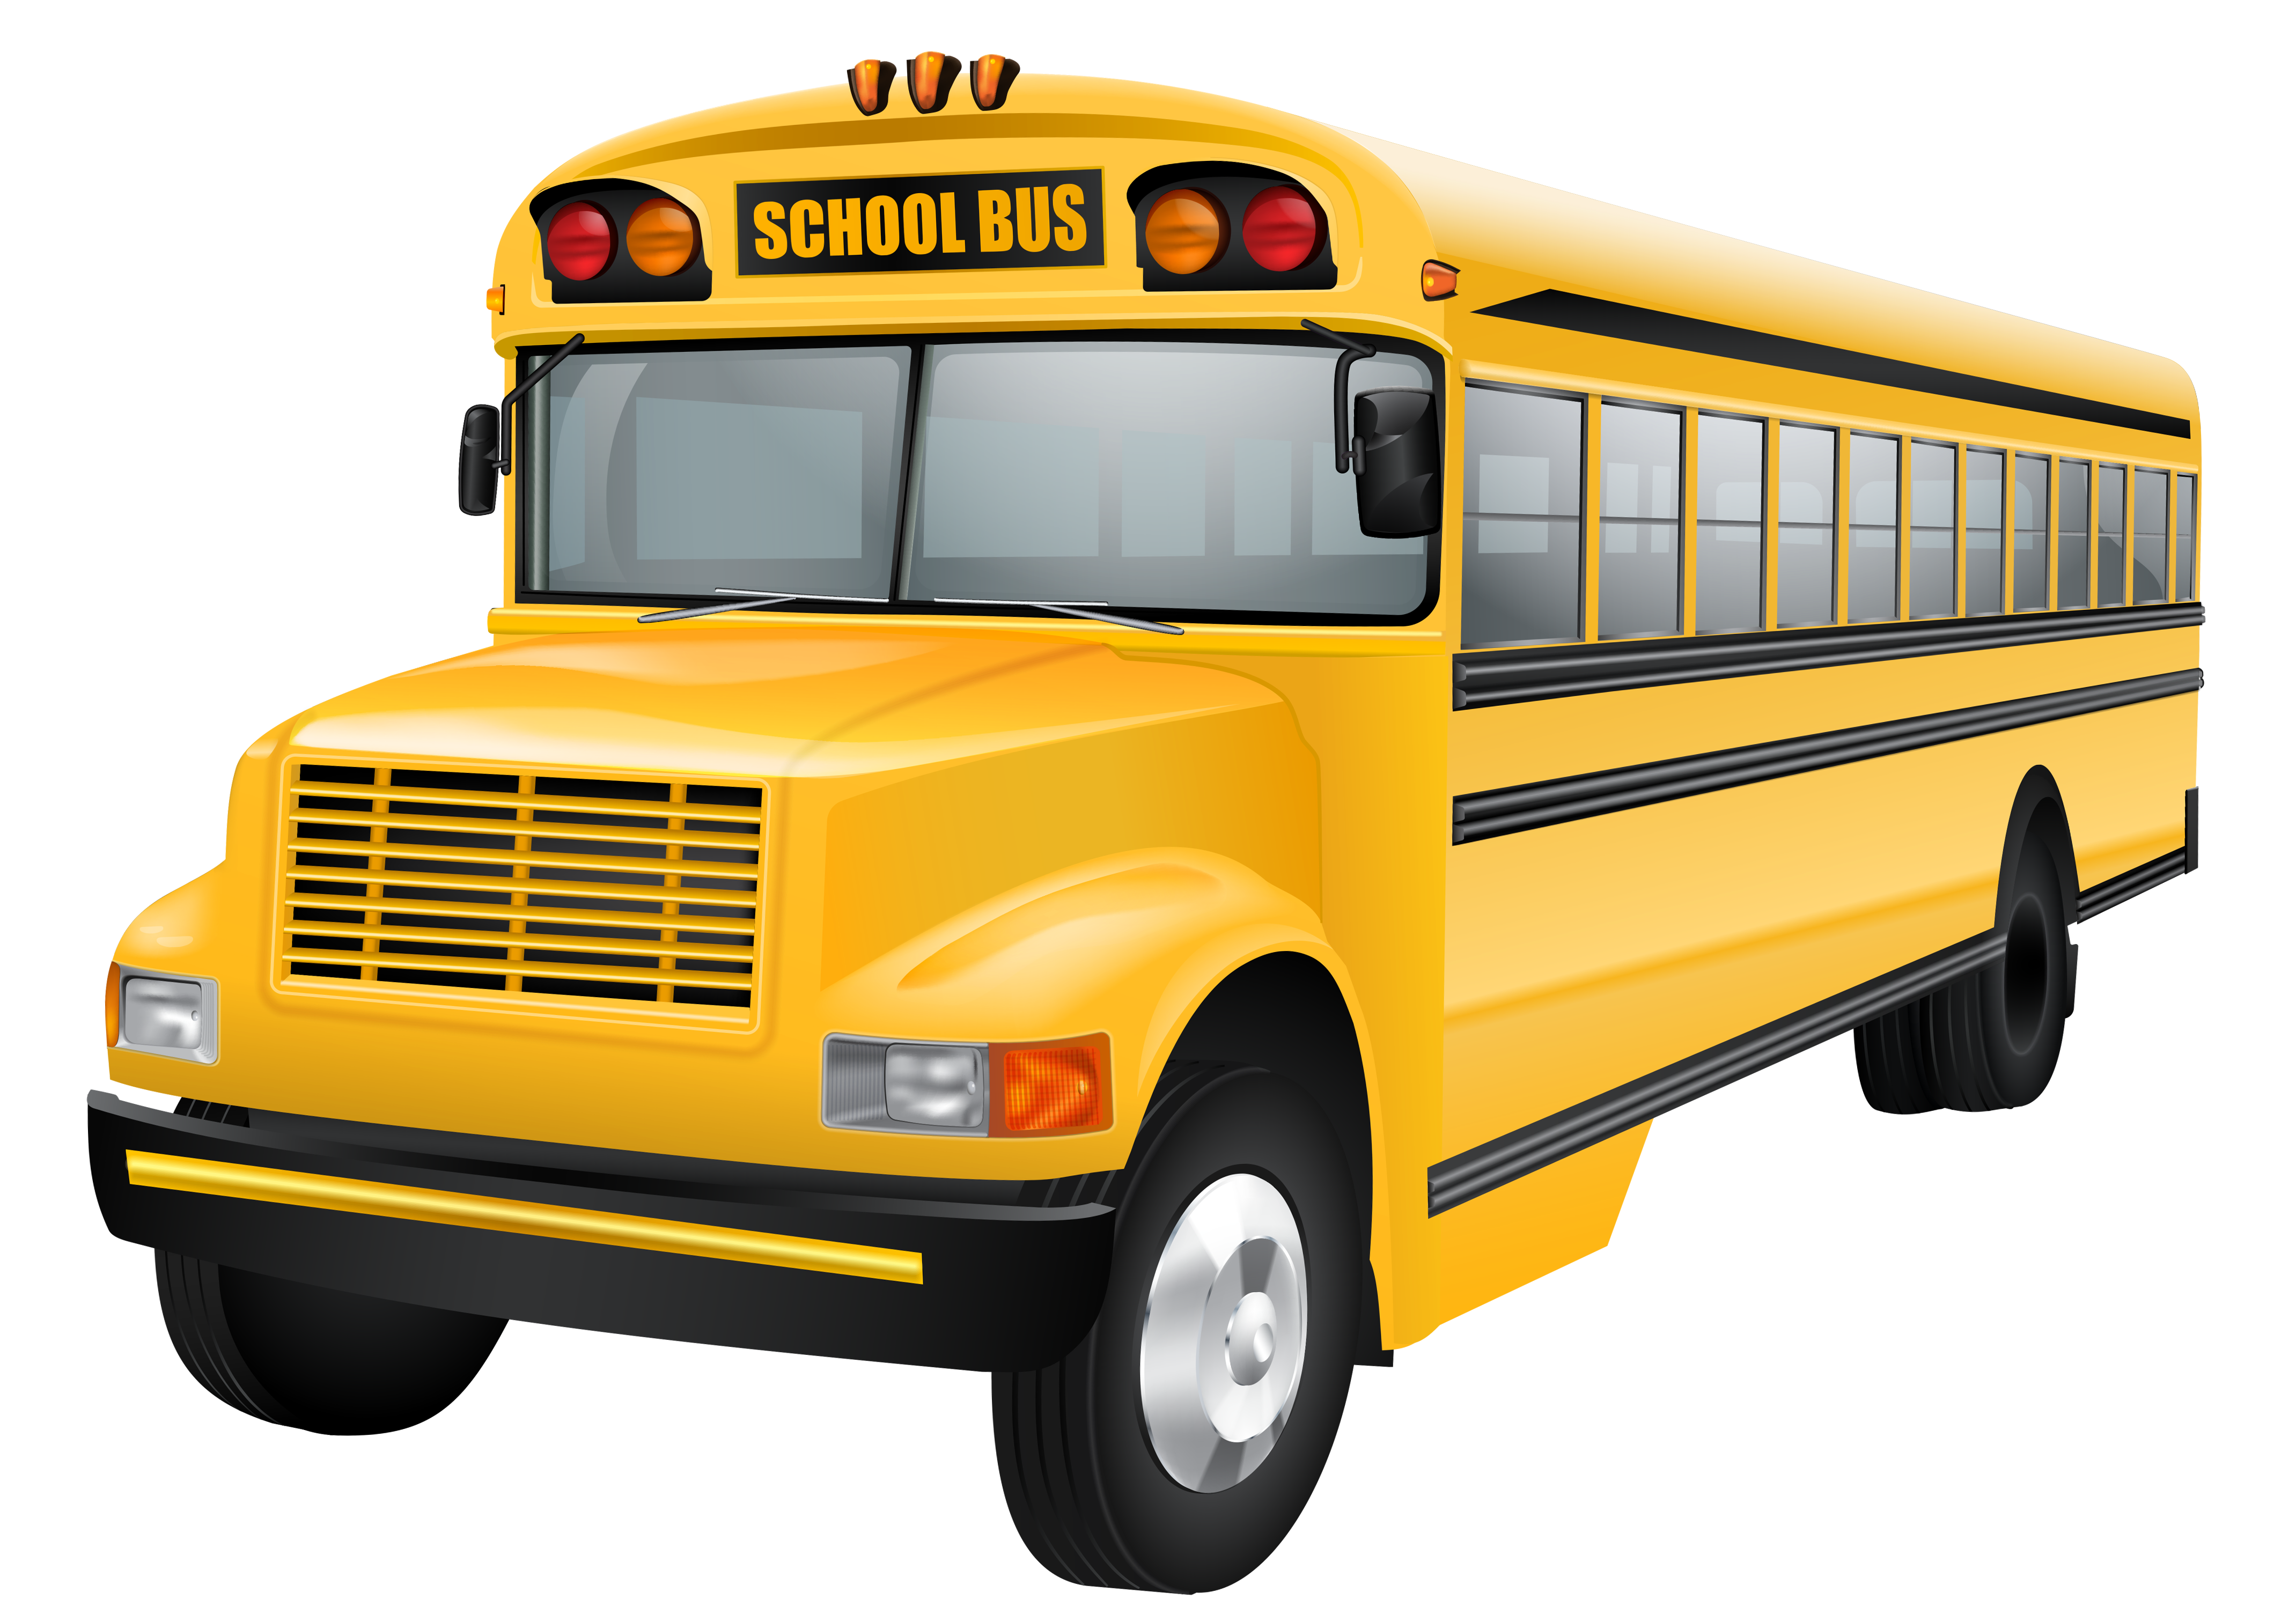 free school bus clipart 7 2.